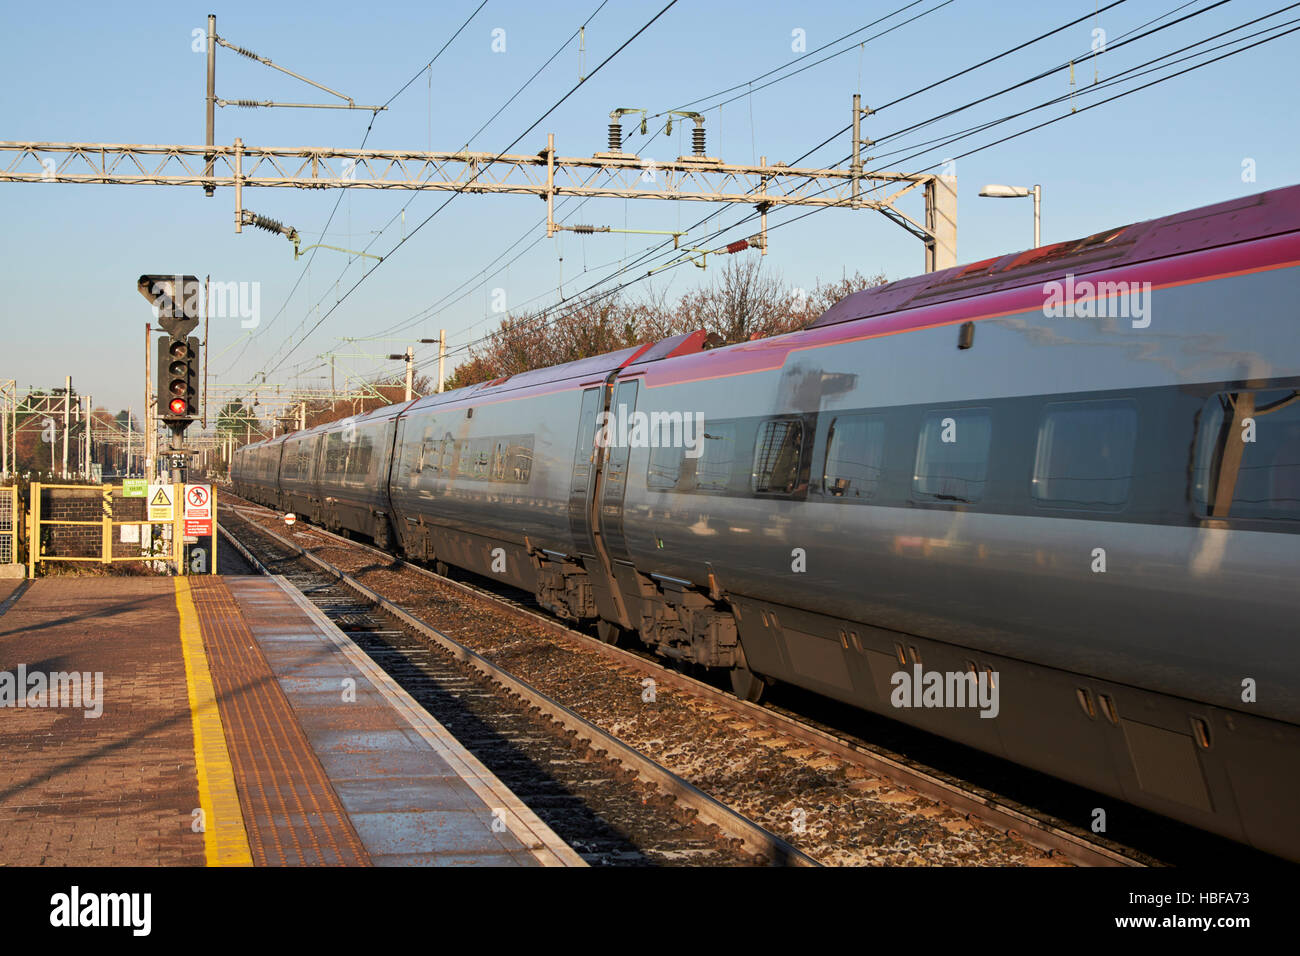 virgin trains intercity train speeding past overhead electricity wires on rail track at liverpool south parkway - Stock Image